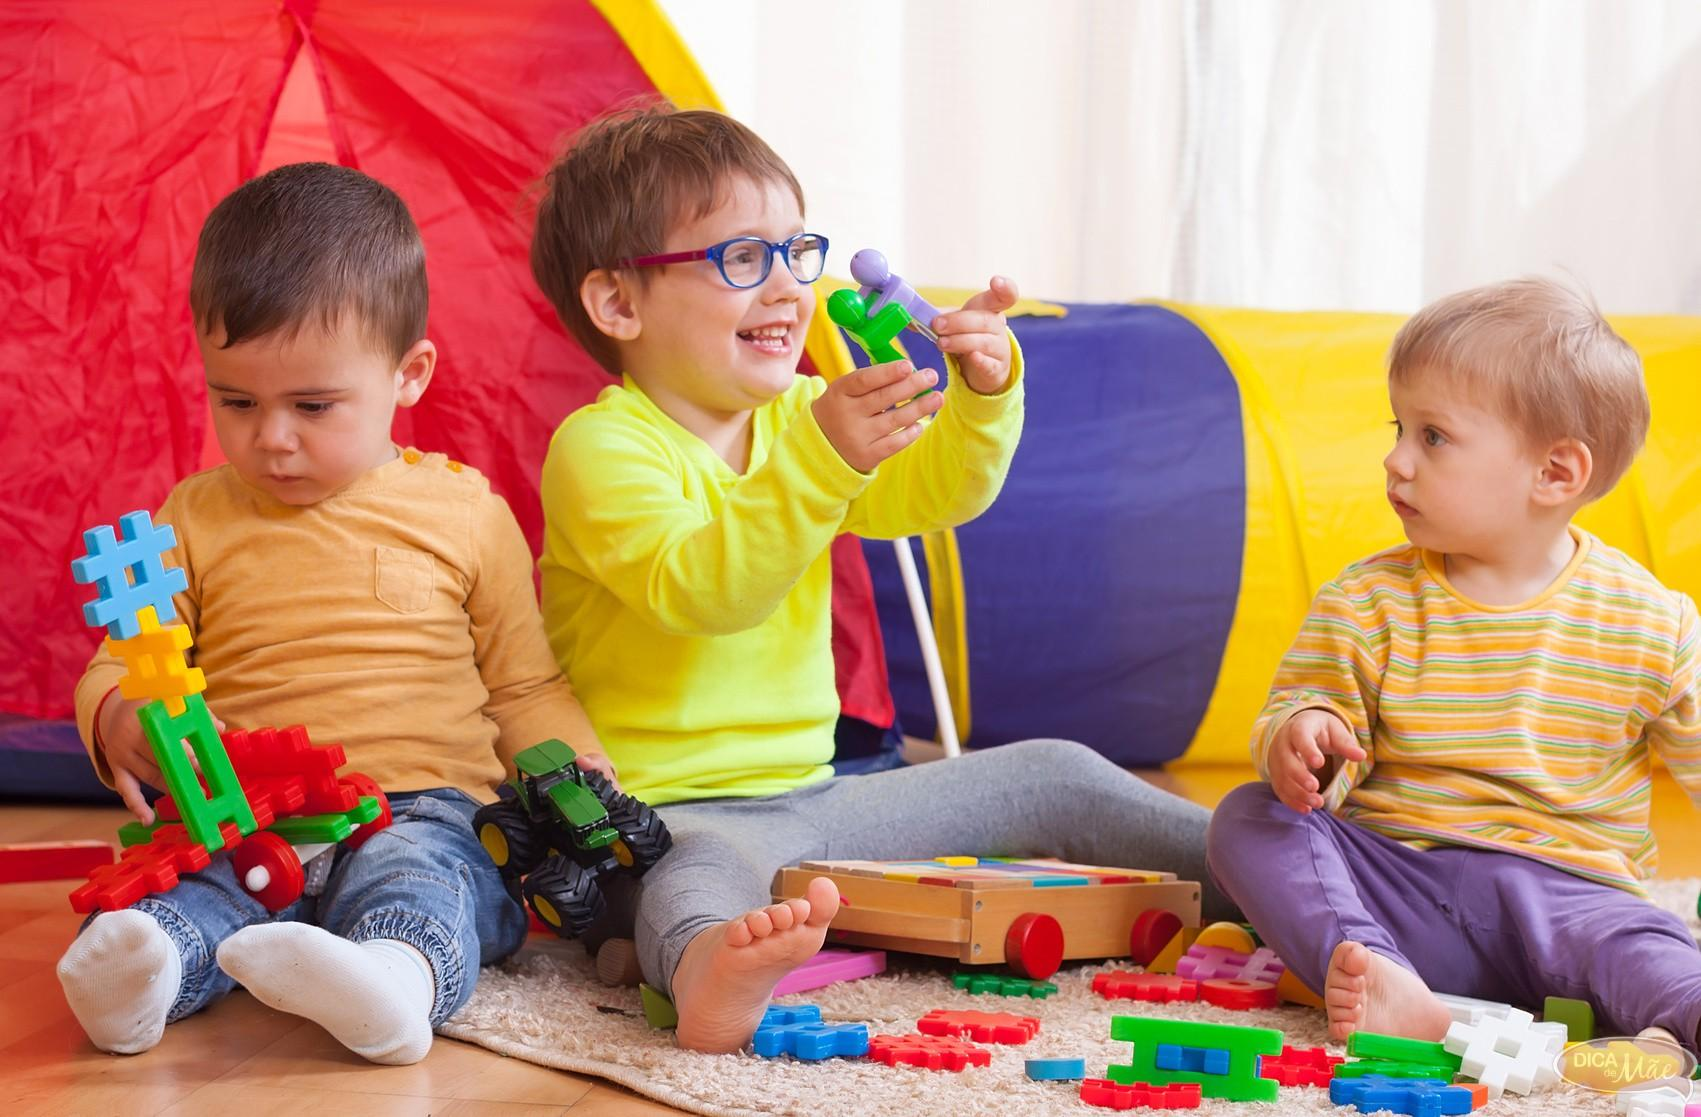 children playing together at home